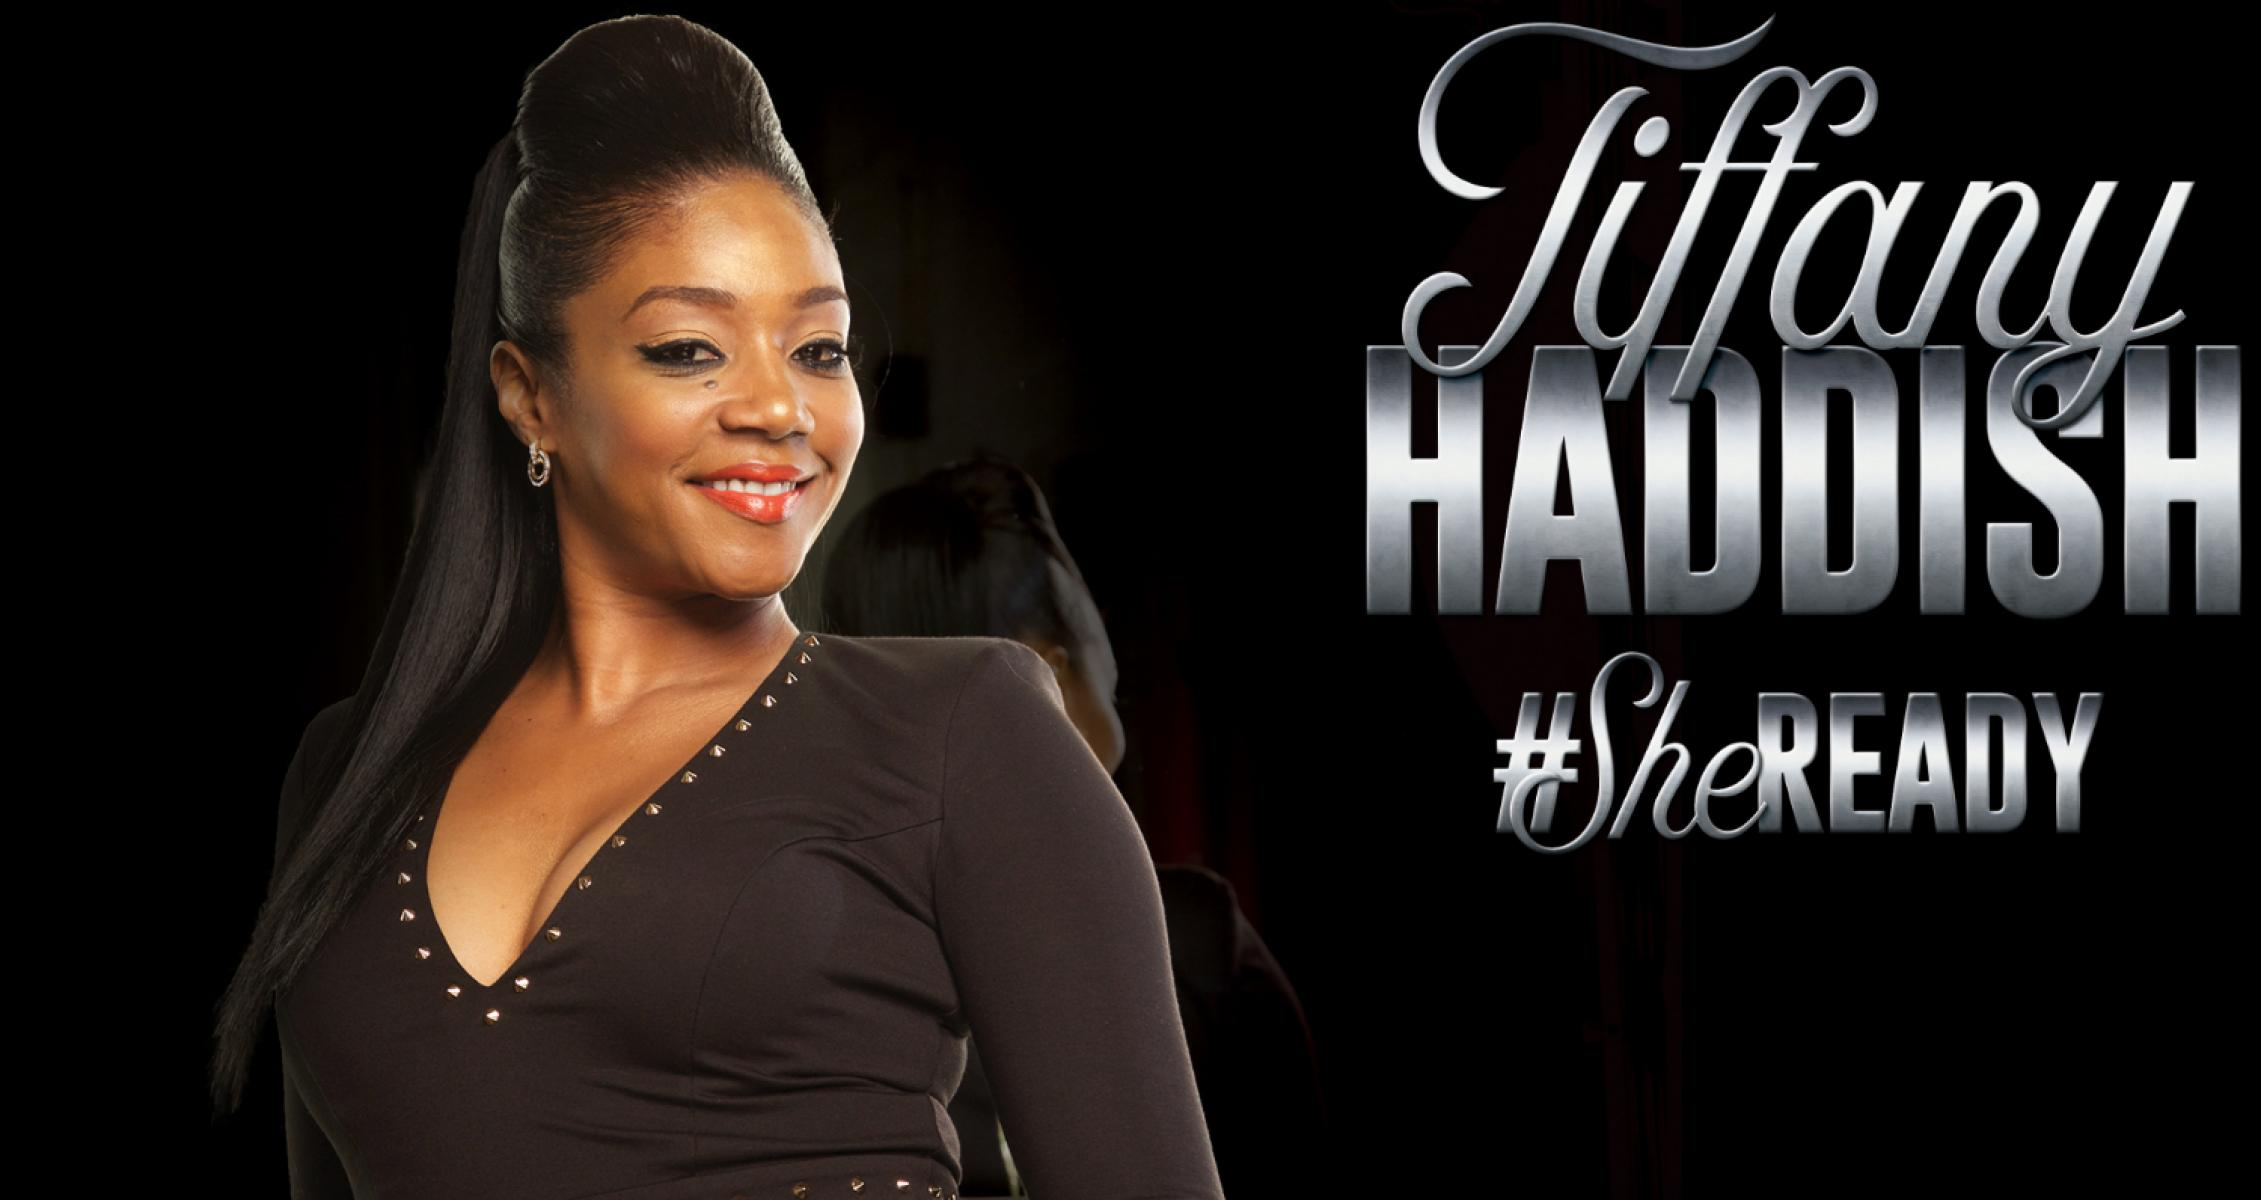 Tiffany Haddish: She Ready Tour